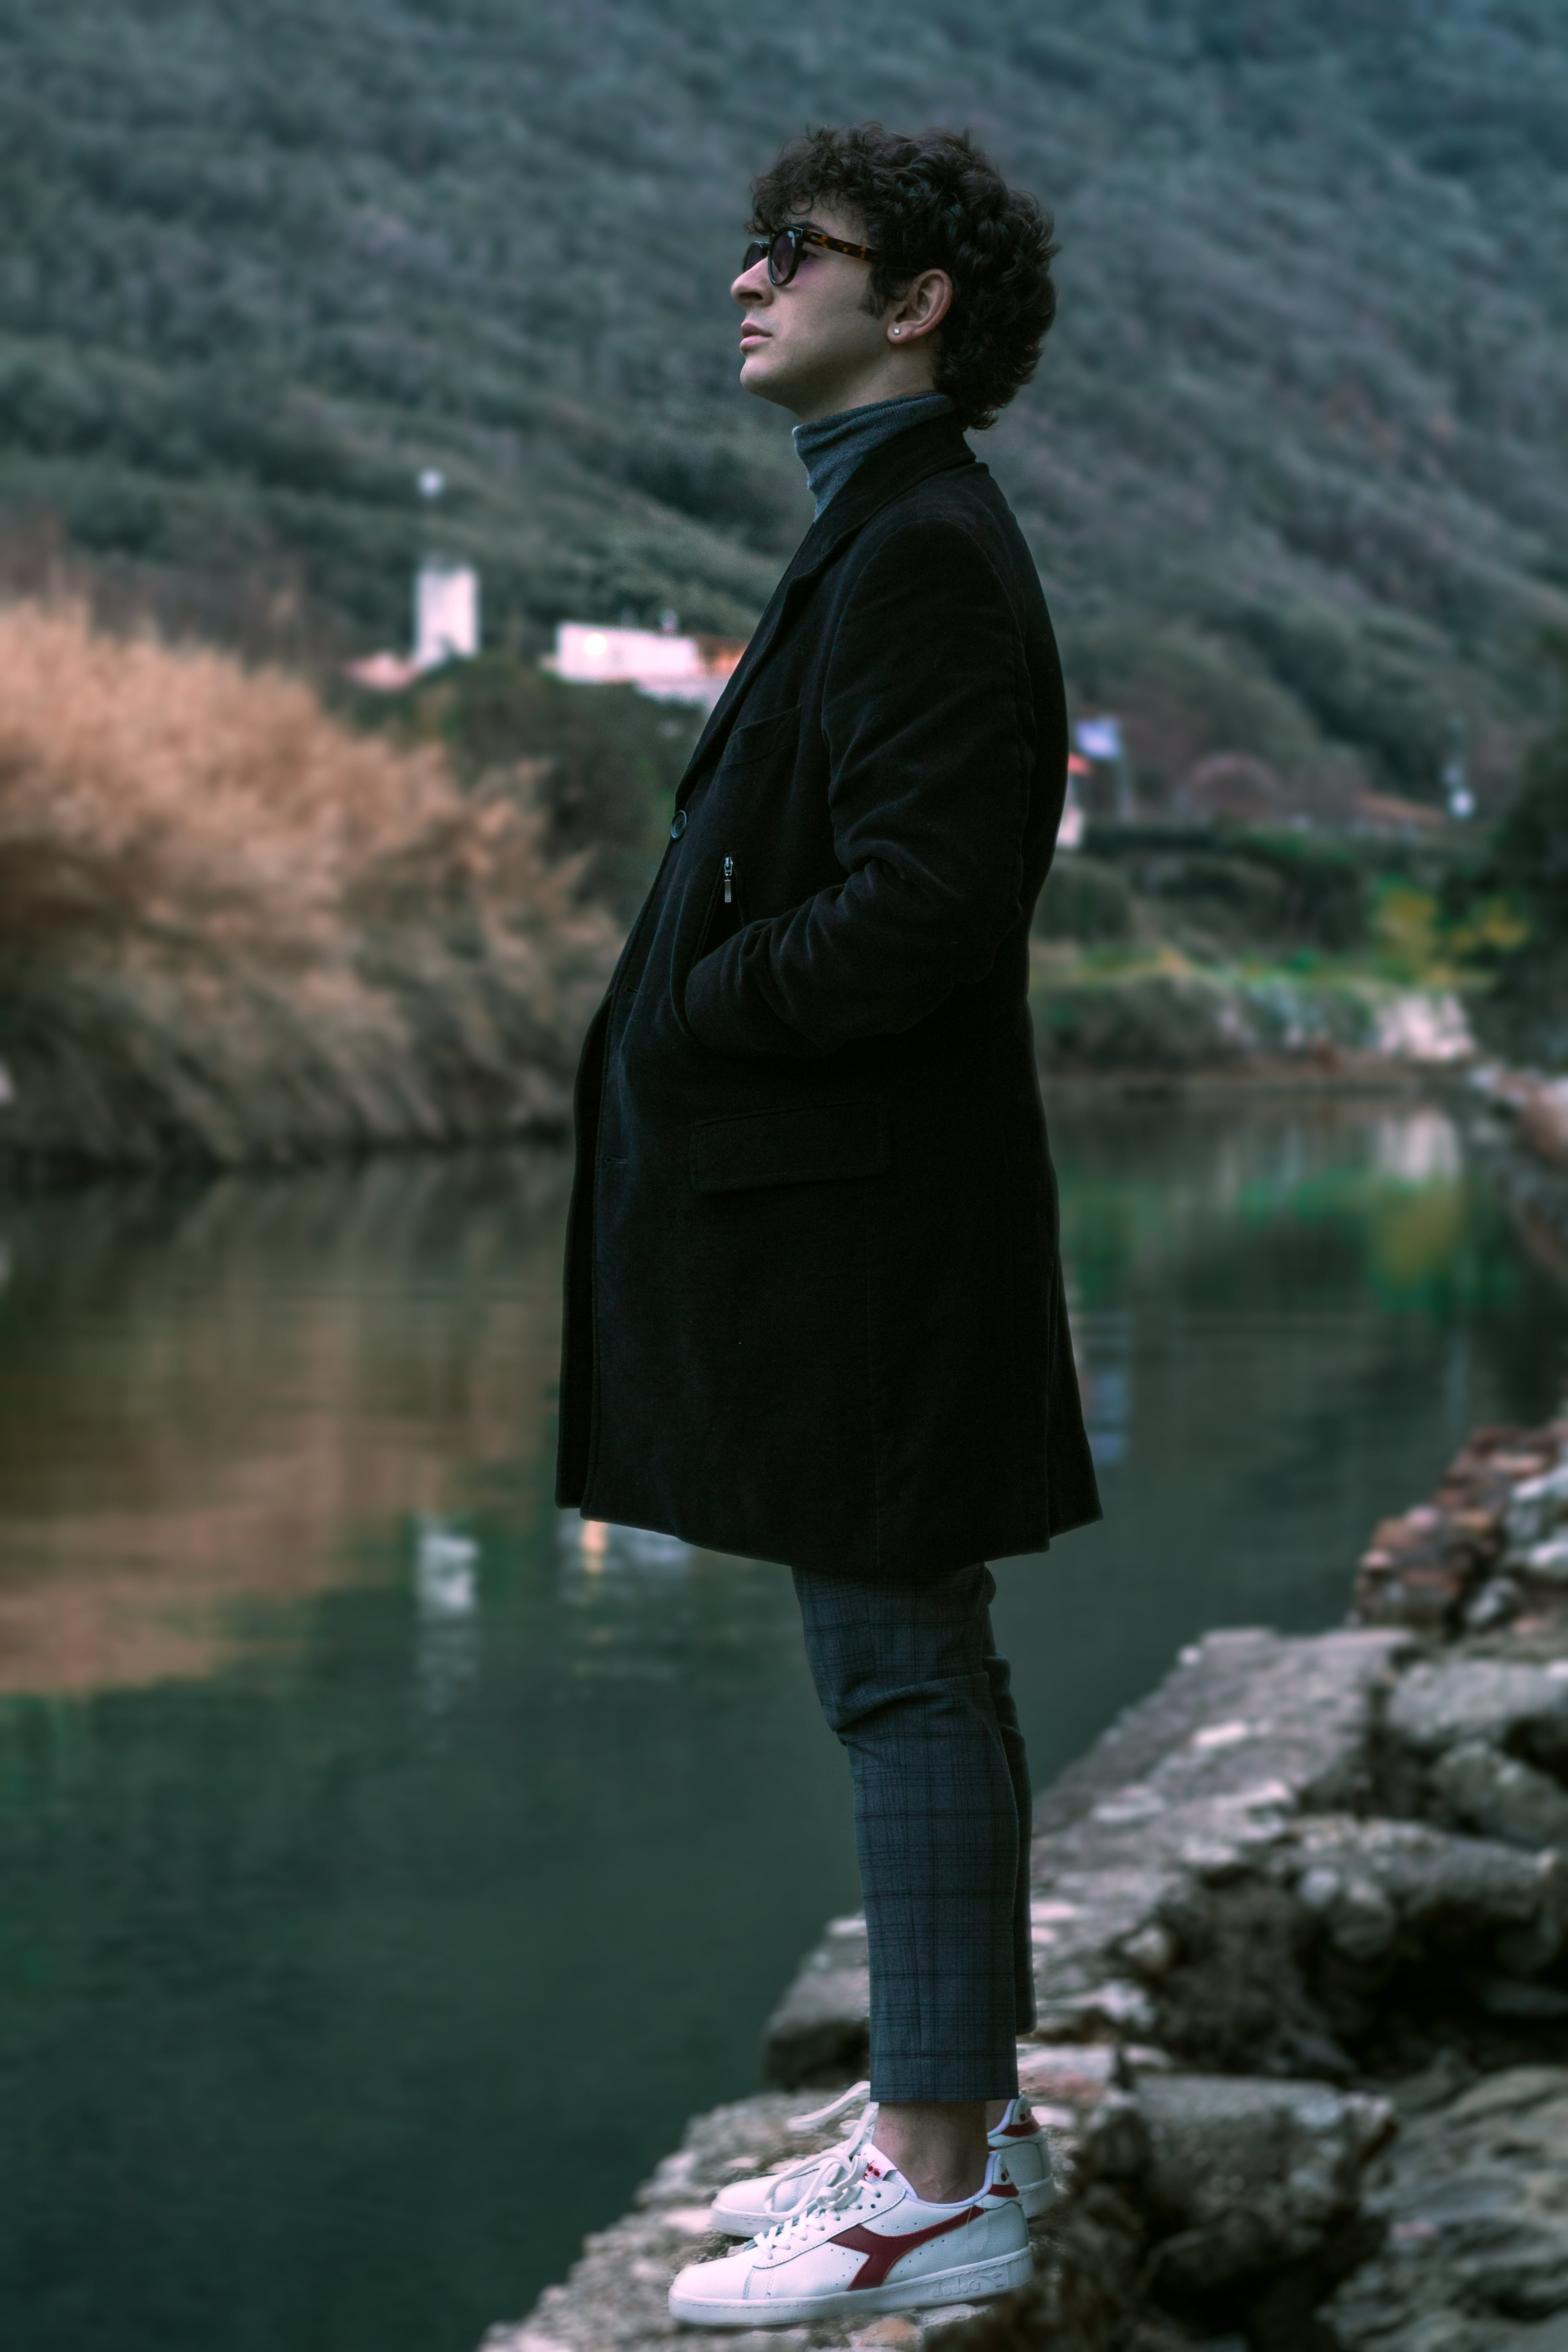 Man Wearing Coat Standing Beside Body of Water